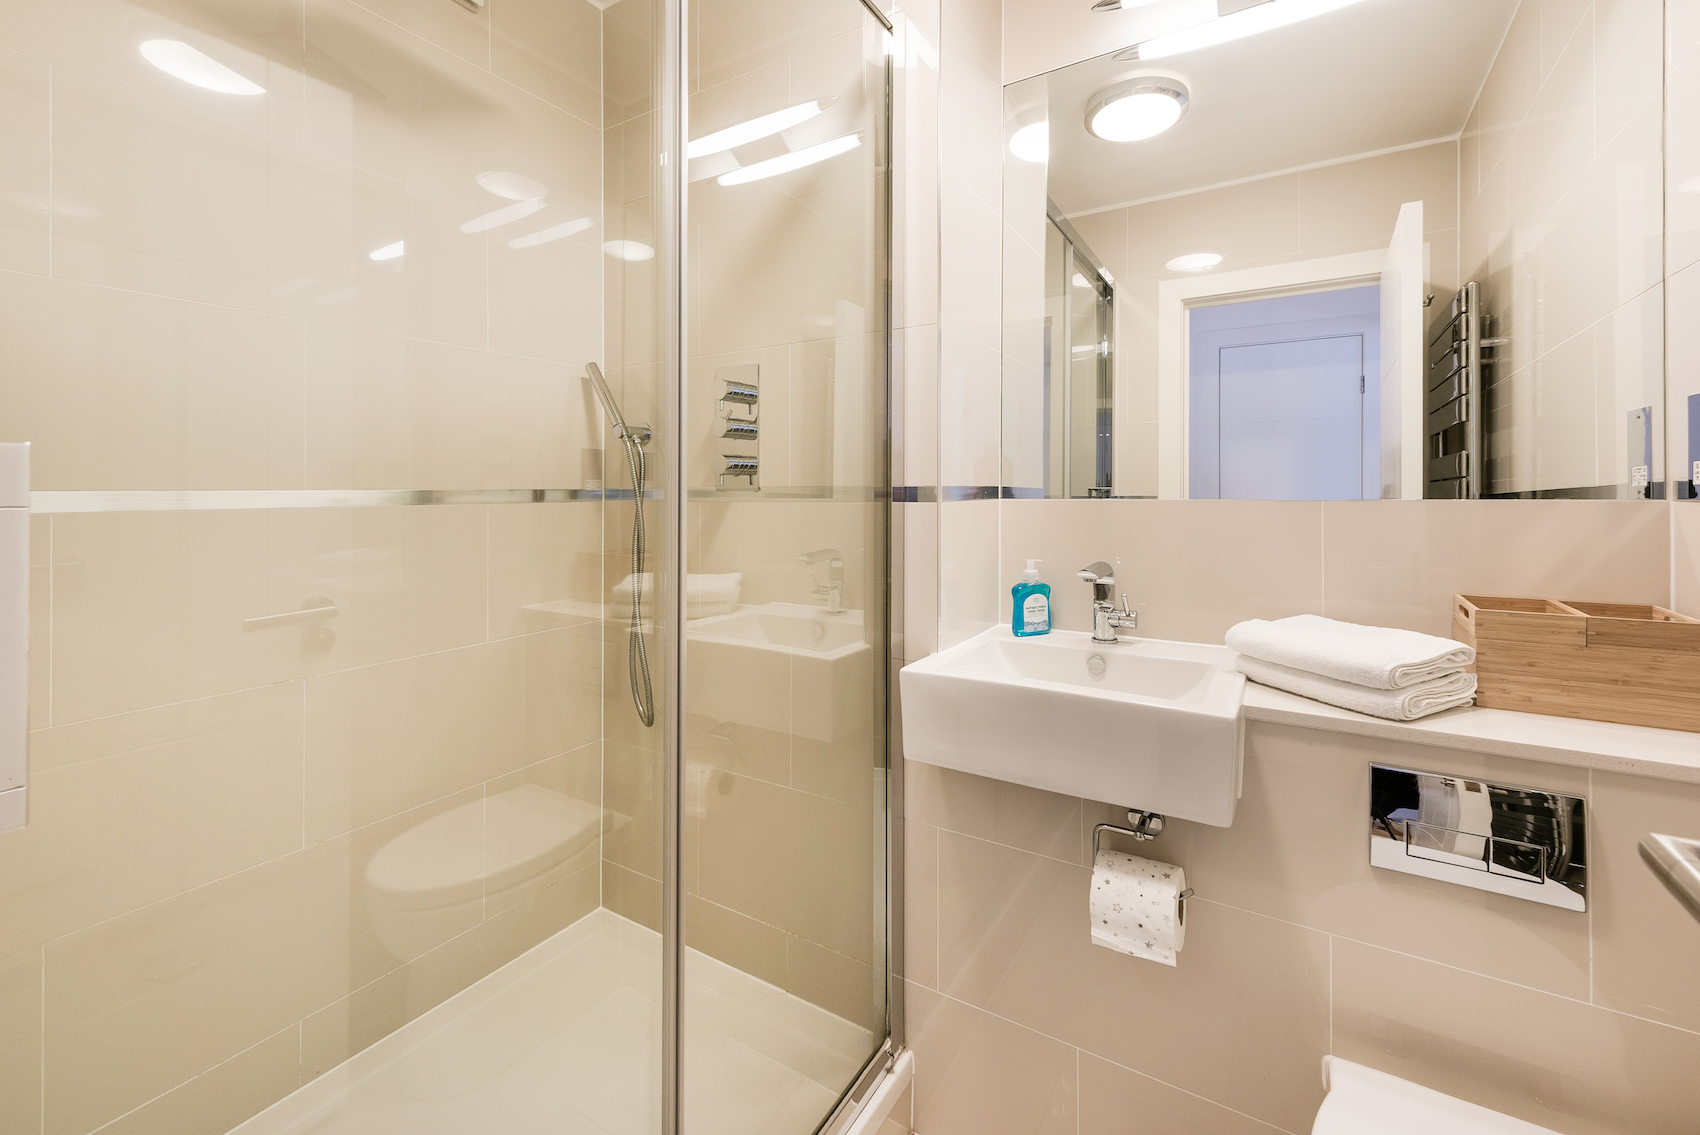 Bathroom at Short Gardens Apartment, Covent Garden, London - Citybase Apartments